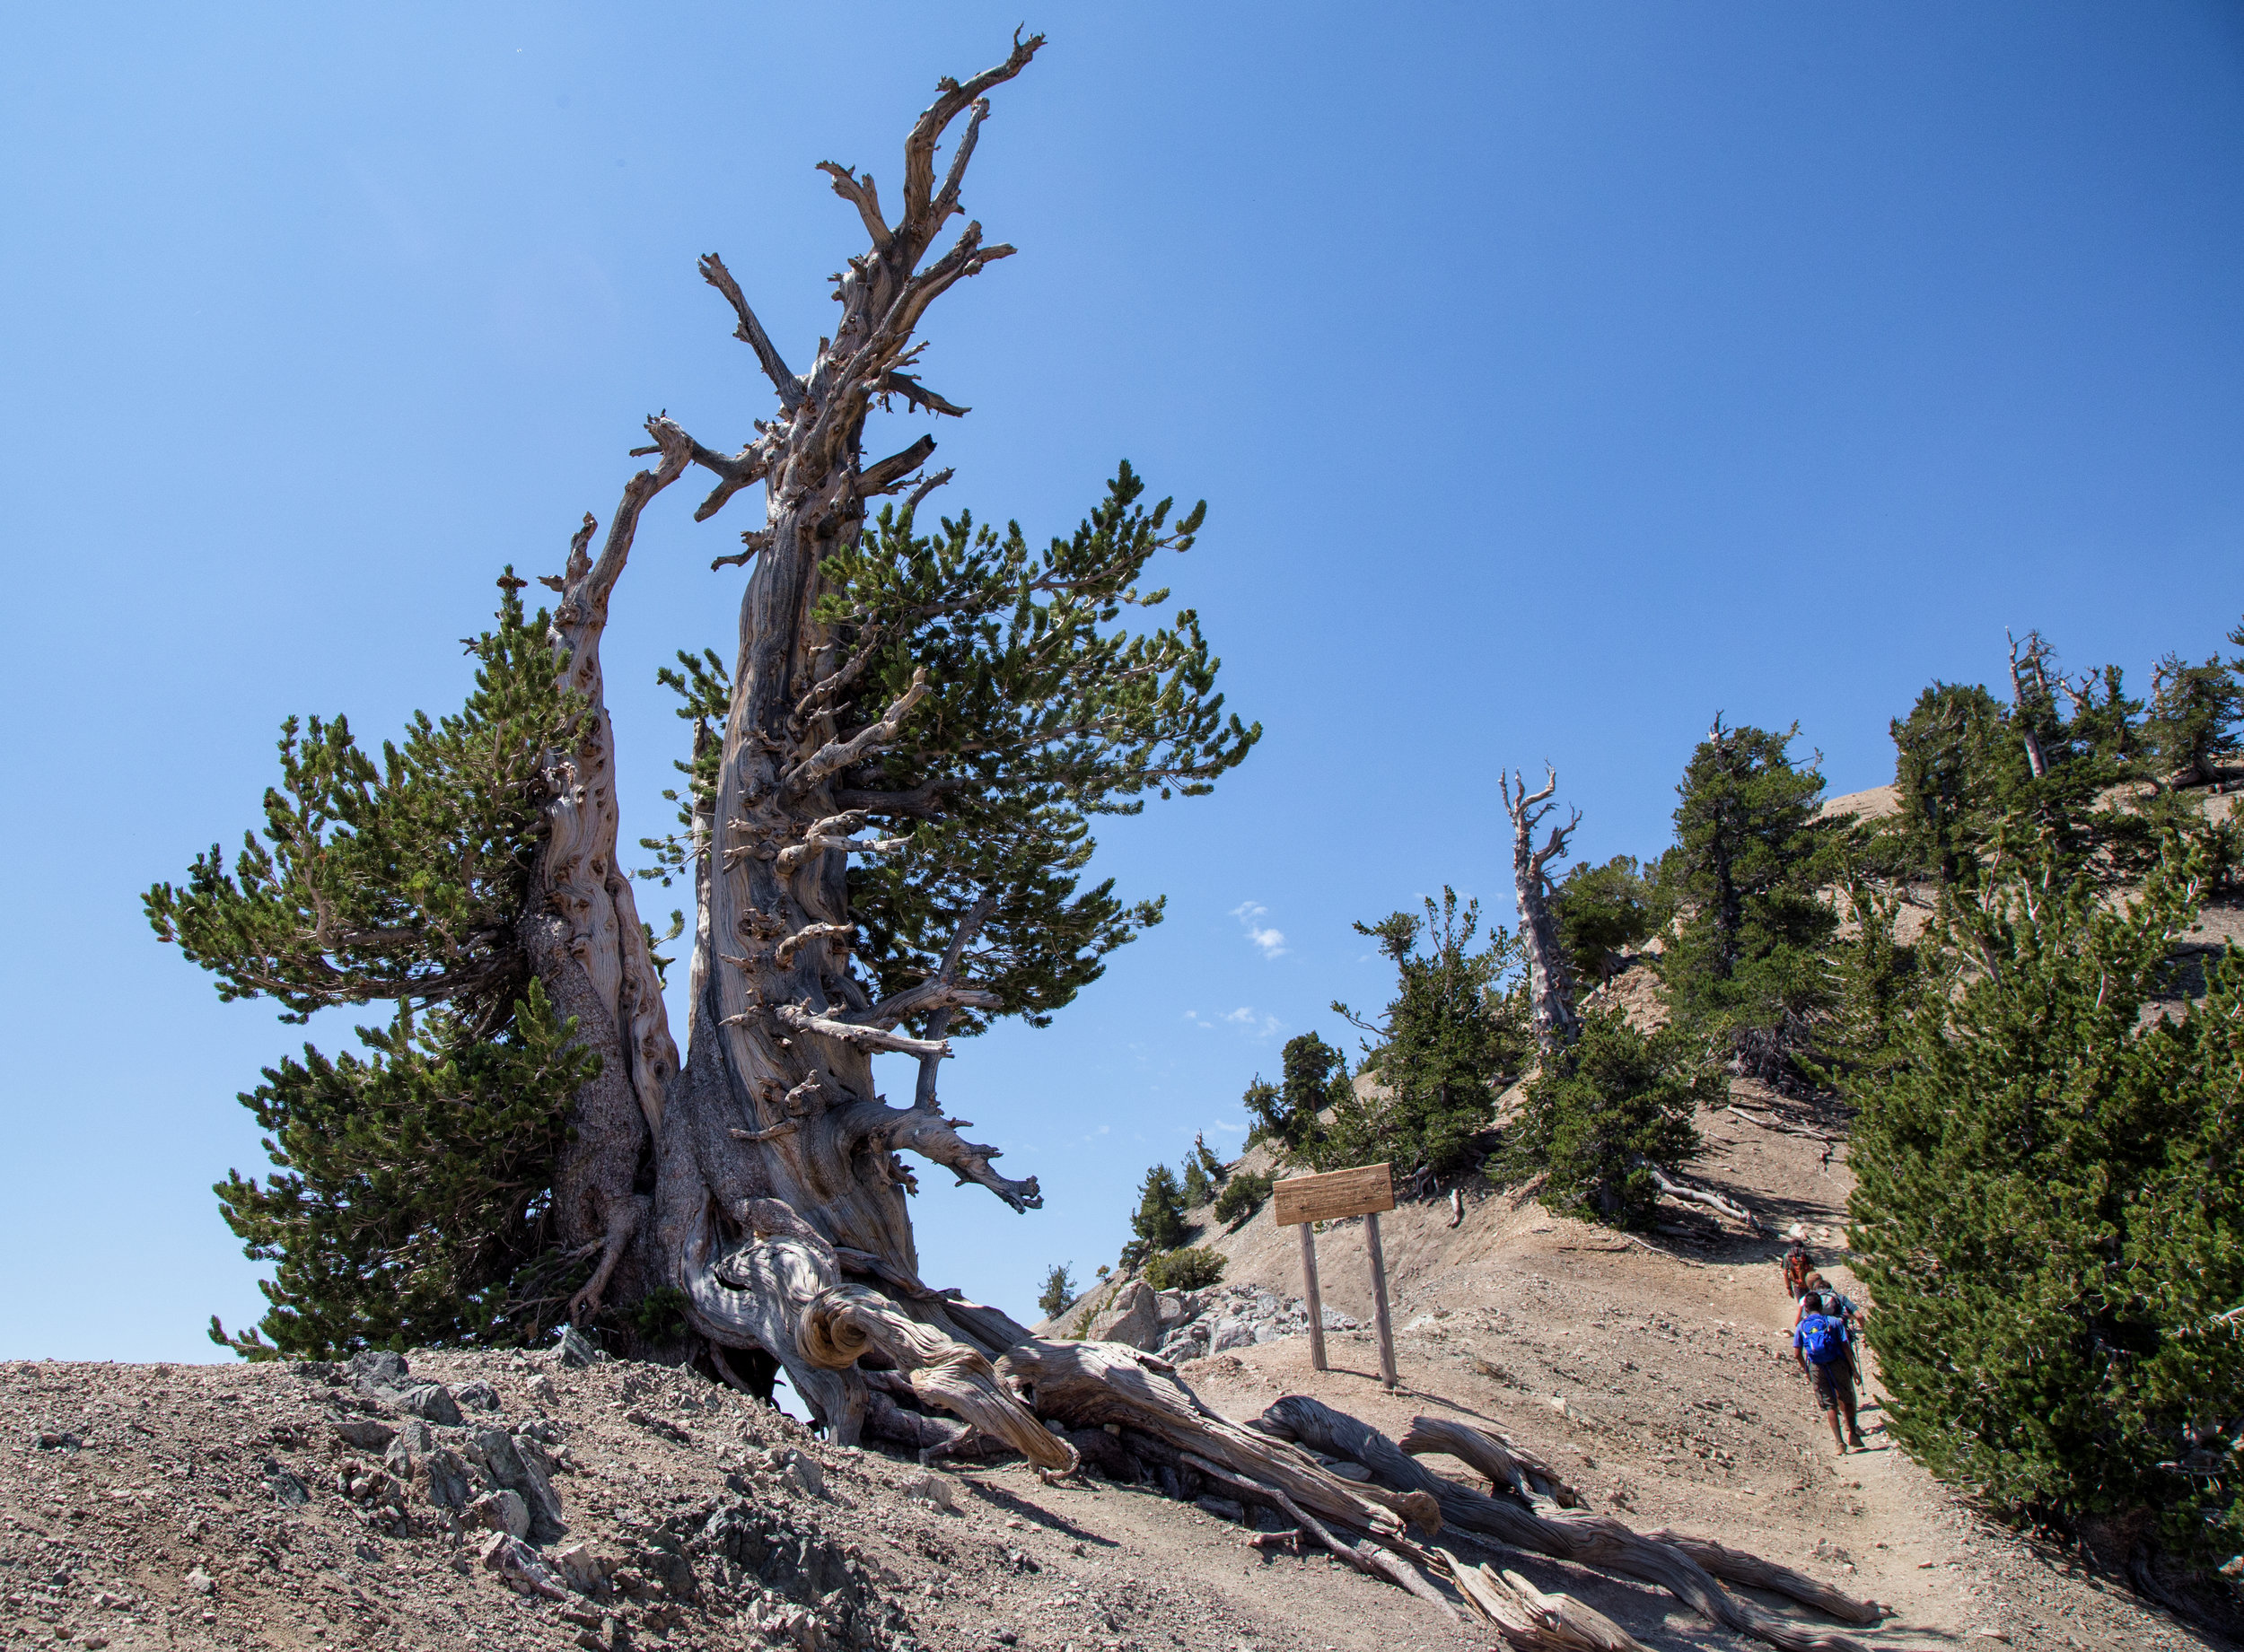 Some hikers going up as we were coming down the ridge with the Wally Waldron tree to the left.